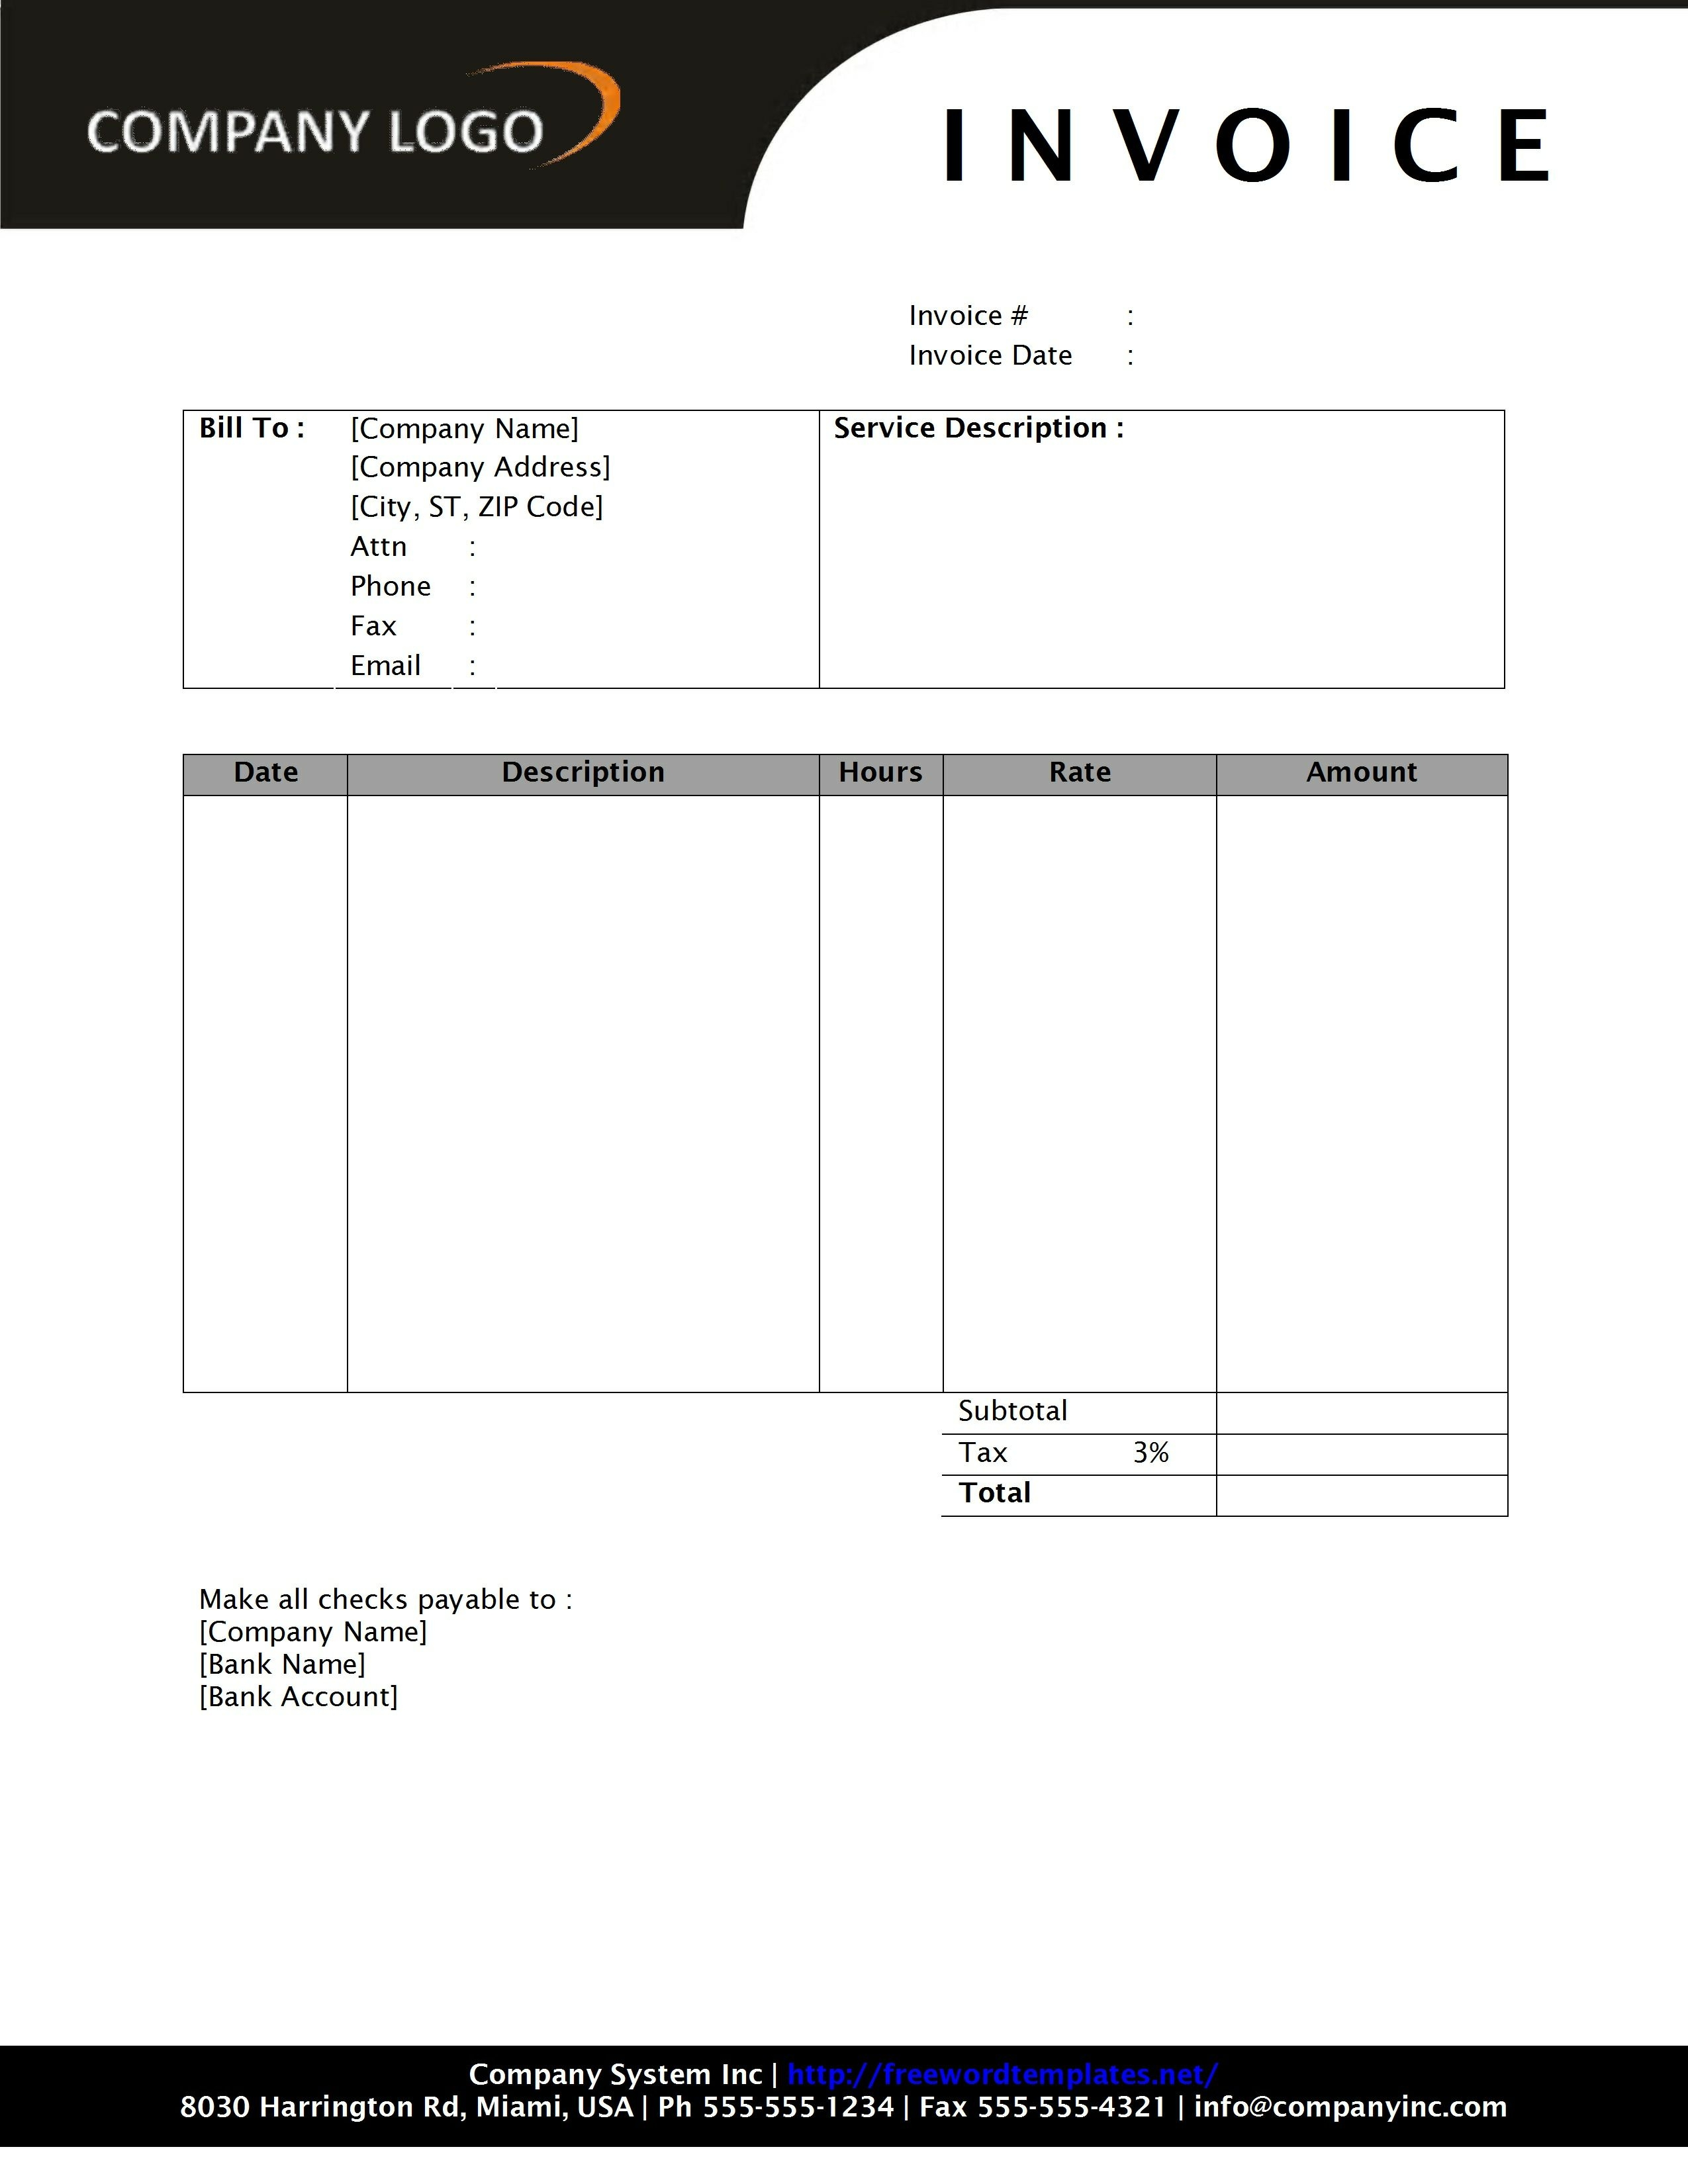 how to send an invoice to a company